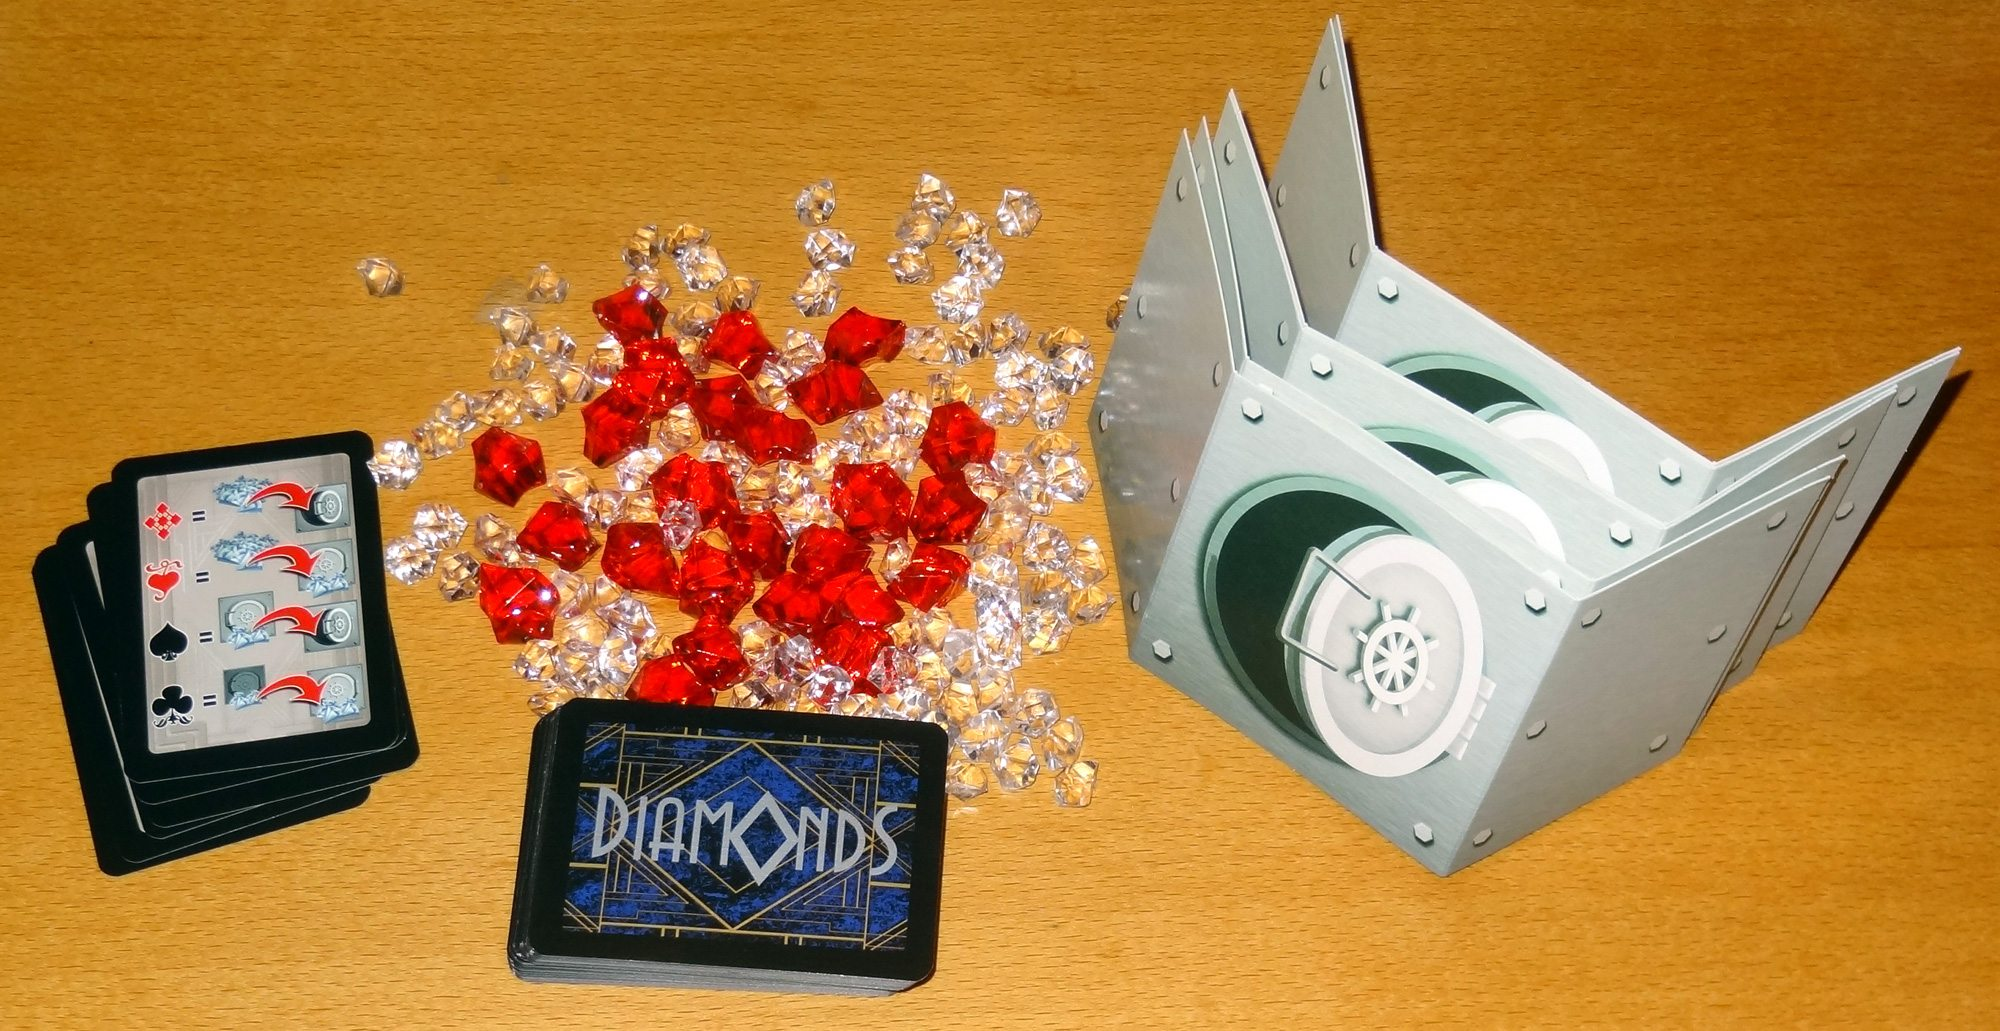 Diamonds components